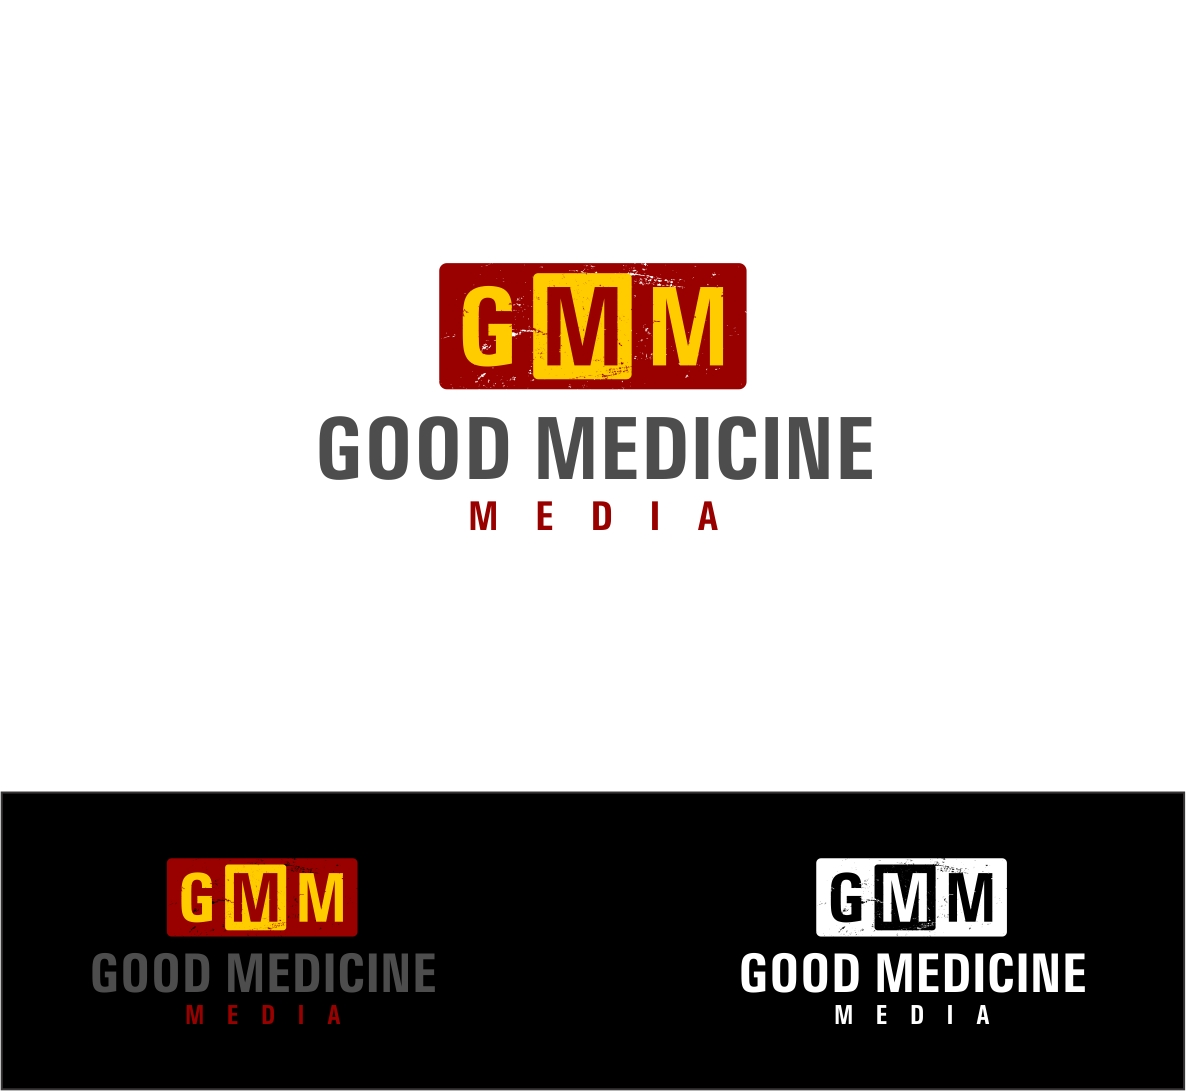 Logo Design by haidu - Entry No. 206 in the Logo Design Contest Good Medicine Media Logo Design.